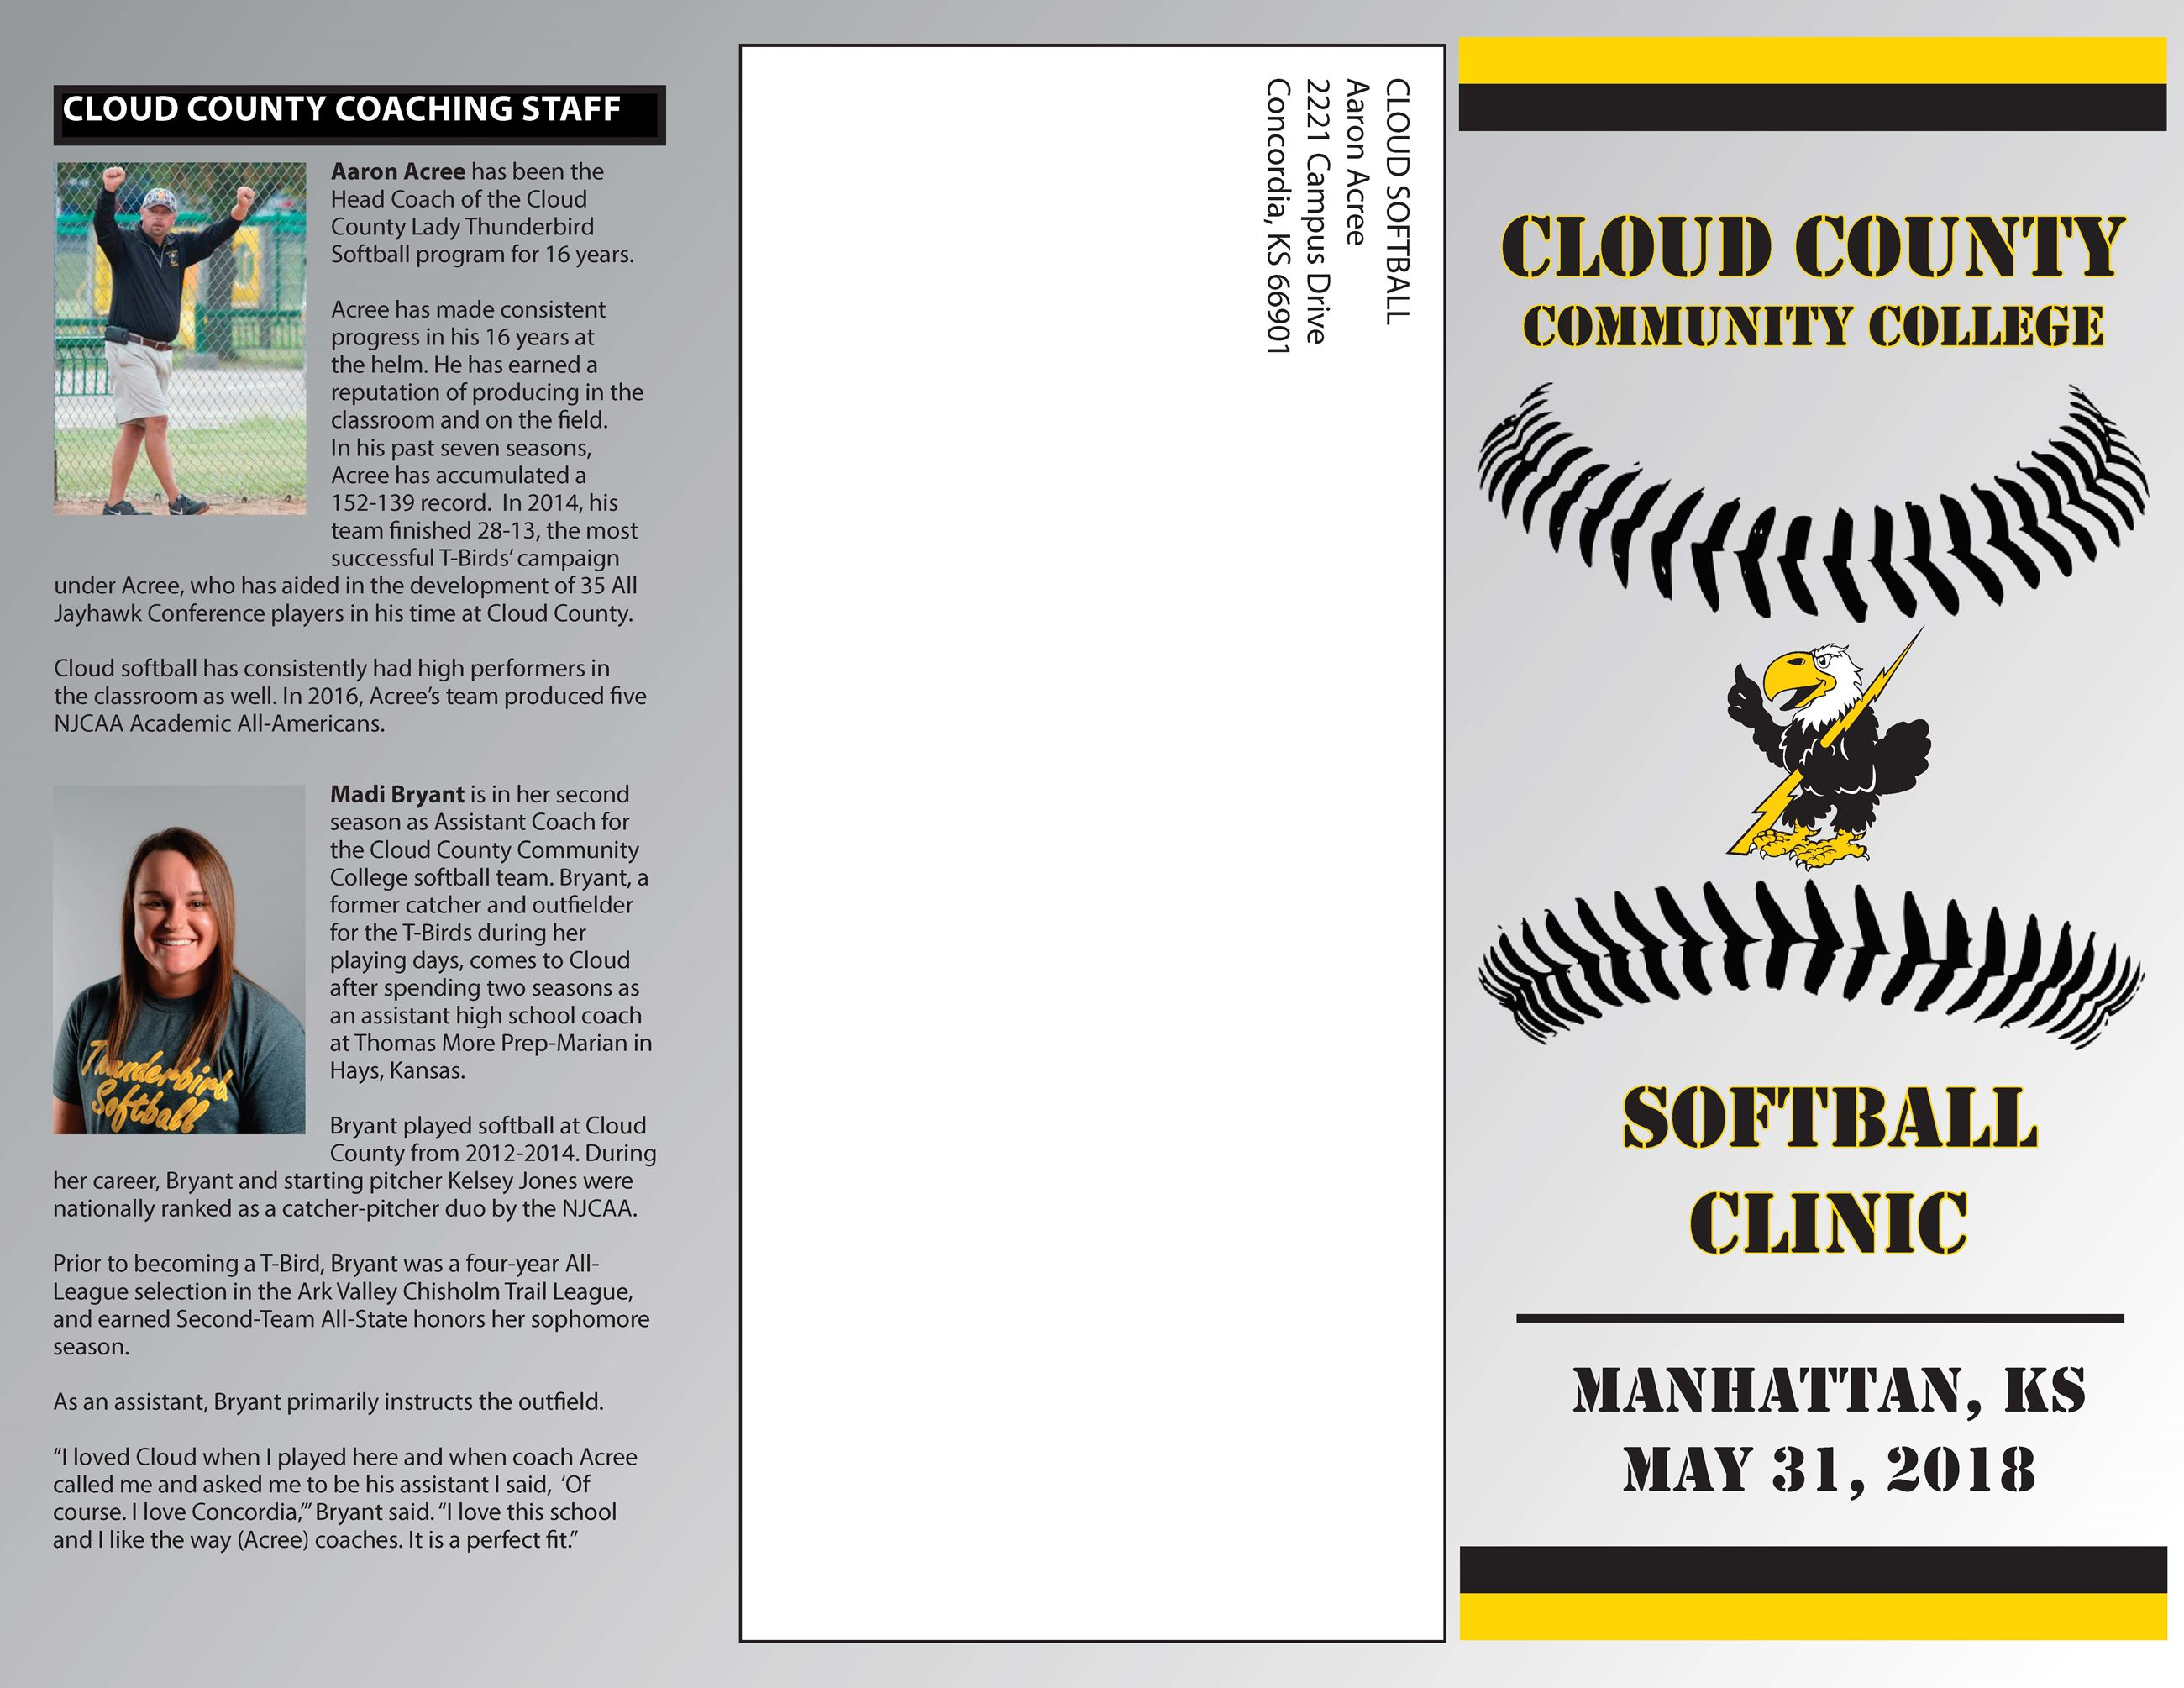 softball clinic_manhattan_Page_1